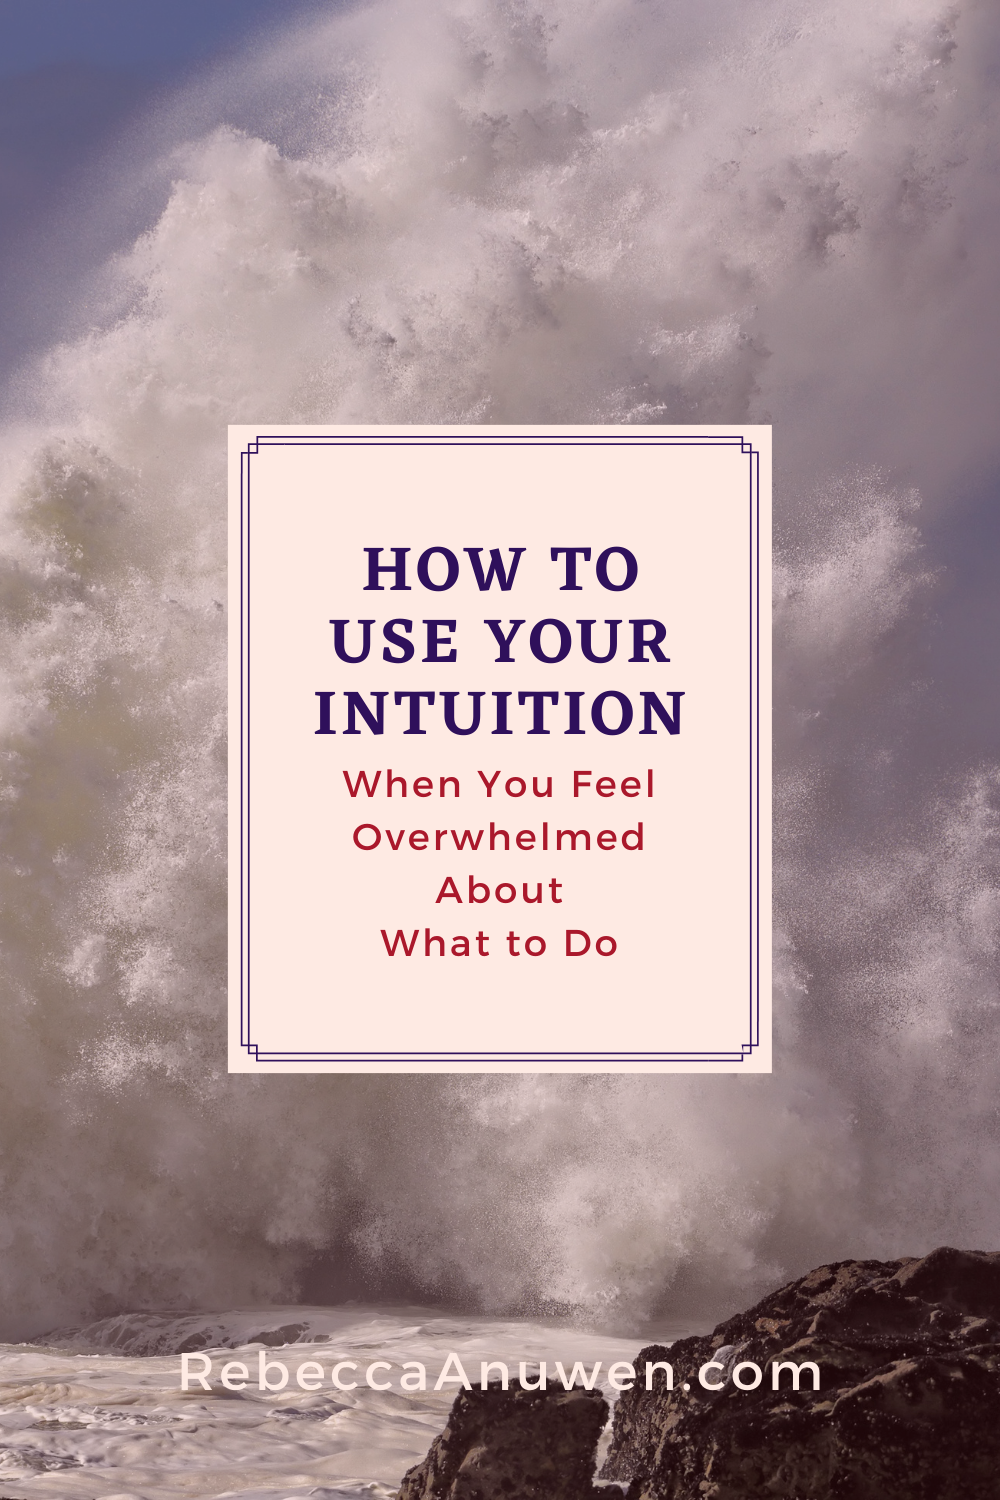 How to use your intuition when you feel overwhelmed about what to do